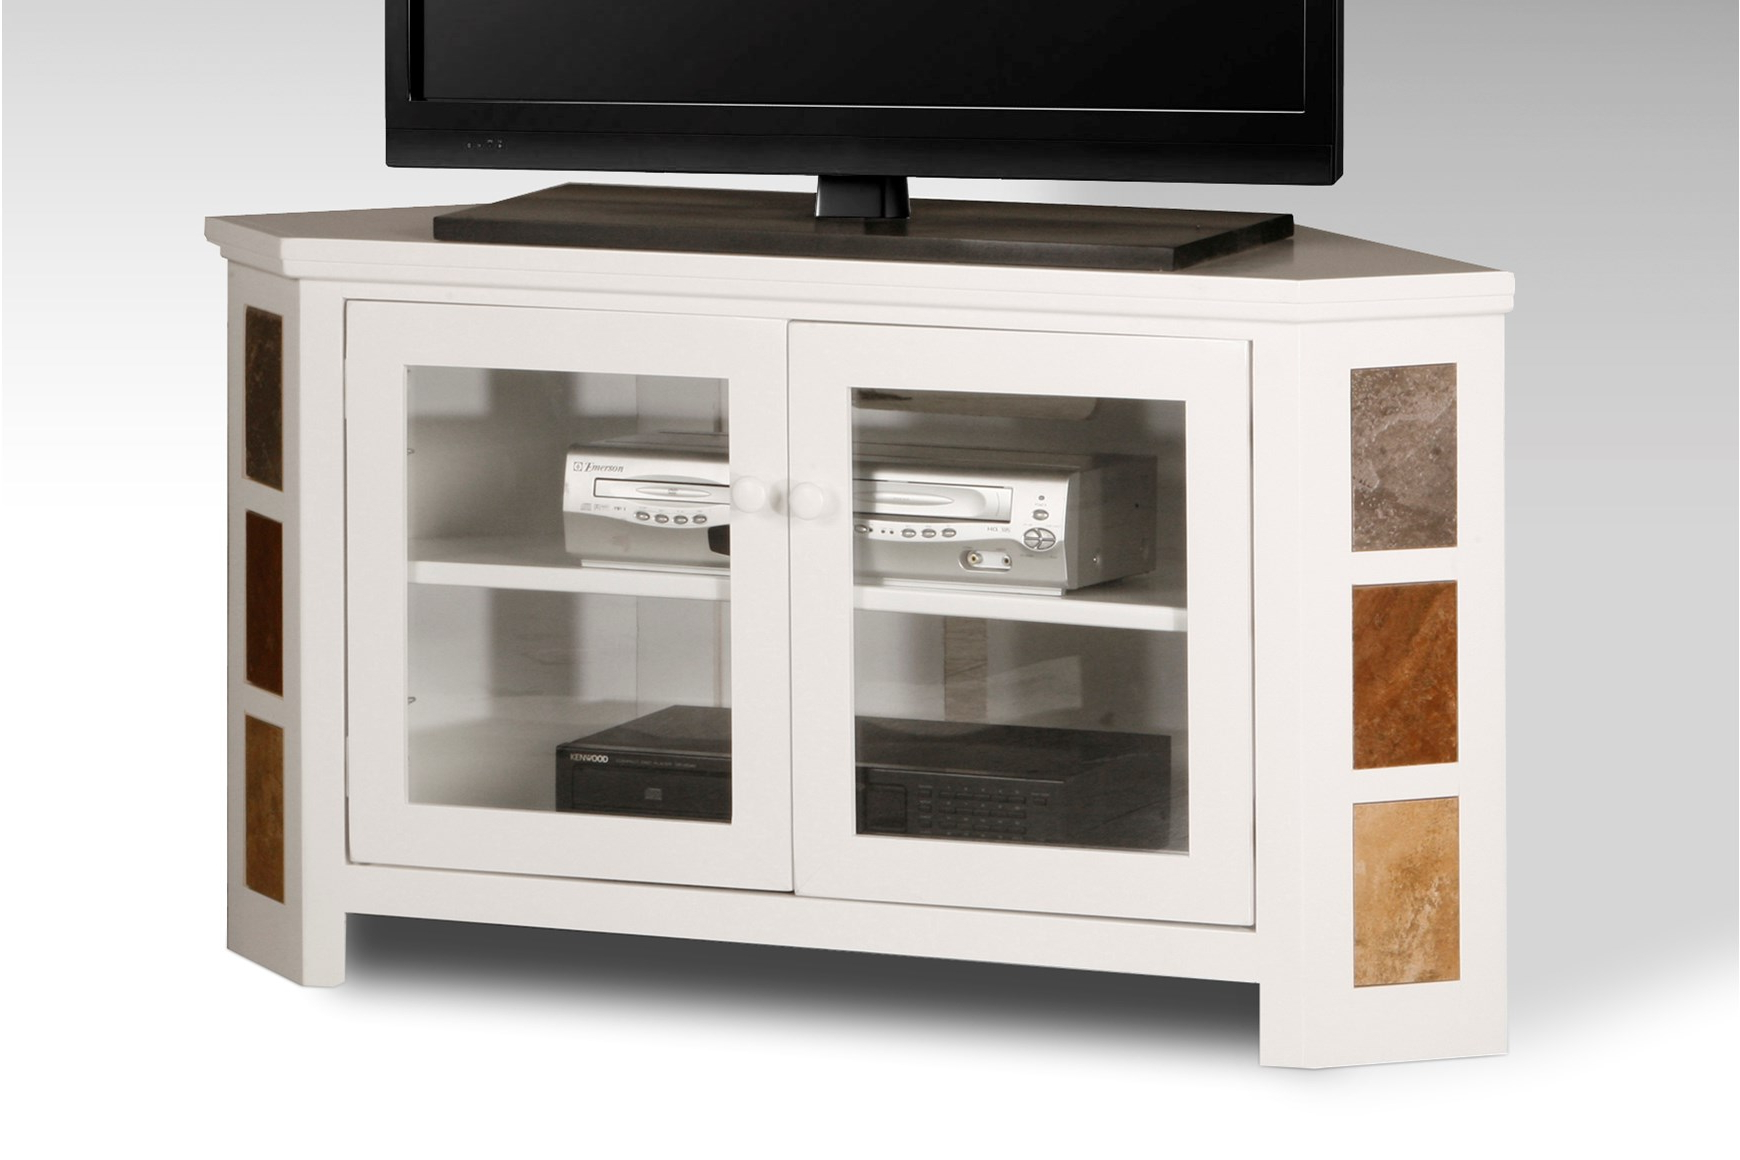 Corner Rustic Tv Stand Plans White With Barn Doors Small Canada Regarding Trendy Rustic Corner Tv Stands (View 3 of 20)